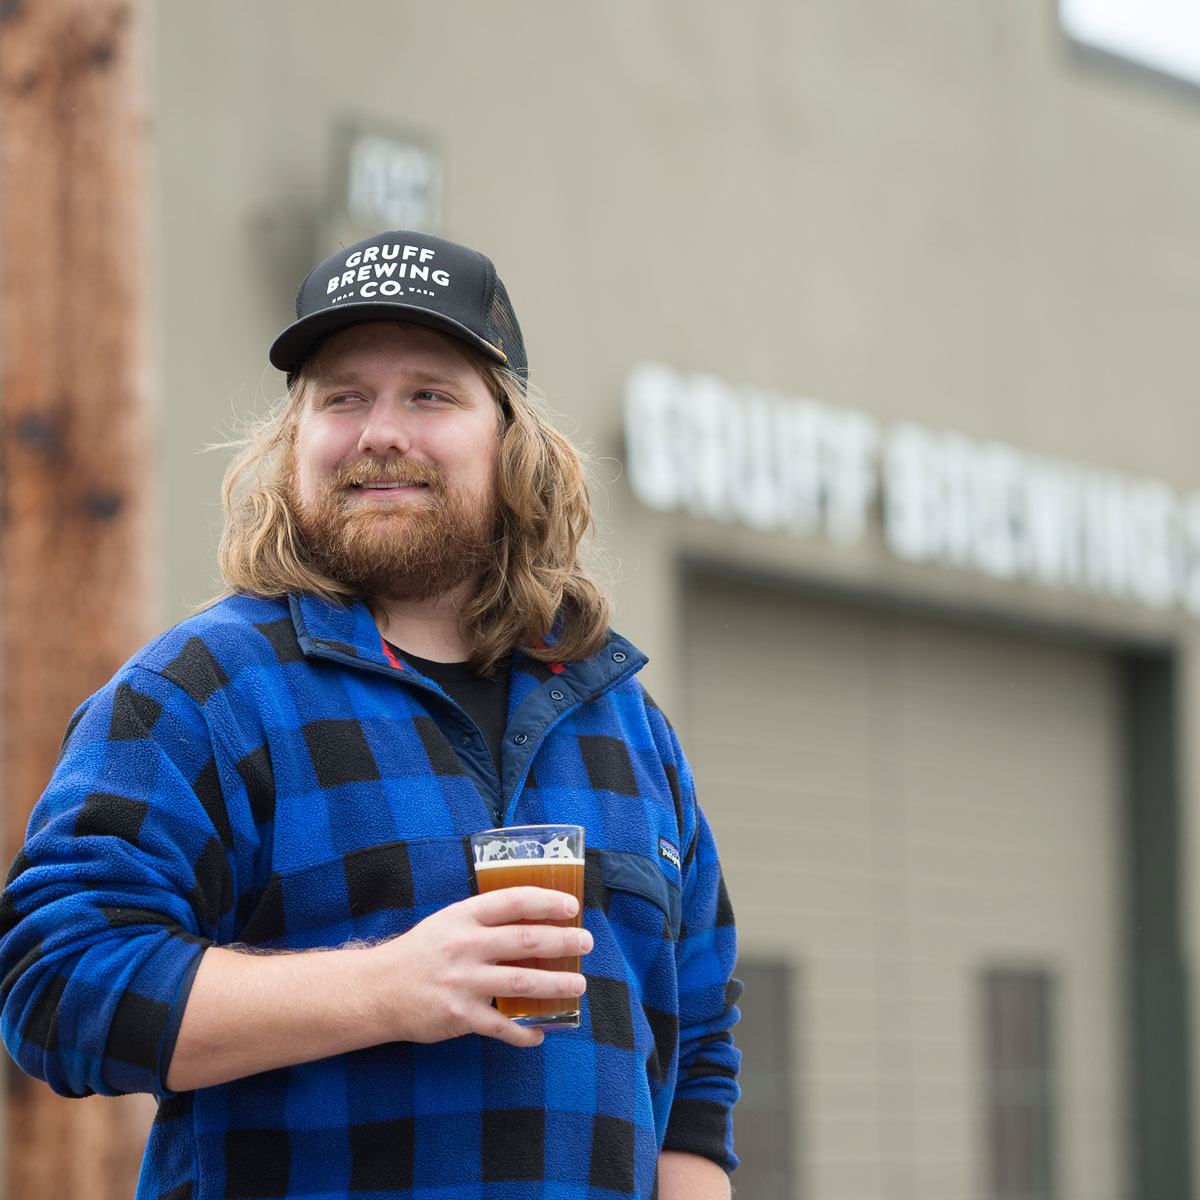 An employee from Gruff poses with beer in hand and a Gruff Brewing Co. cap.